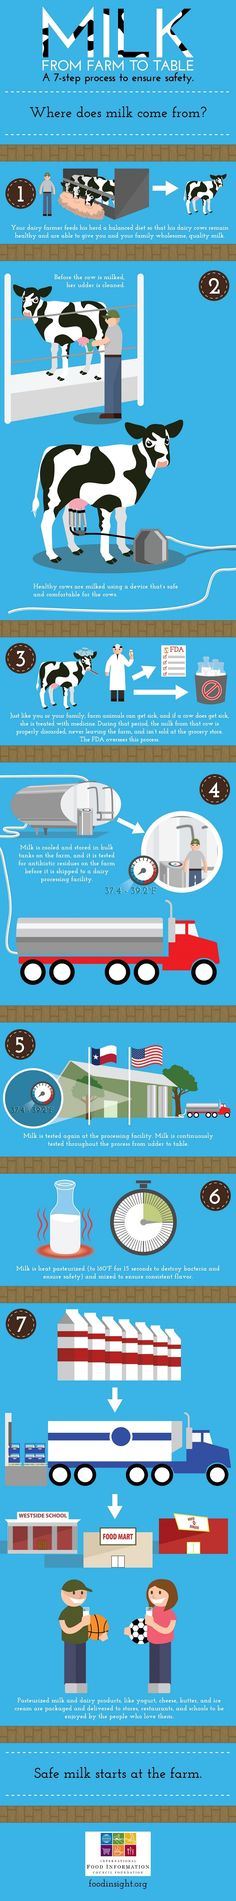 DairyGood.org | Milk From Farm to Table: A 7-Step Process to Ensure Safety. Milk is a quality product that is tested many times to ensure safety.